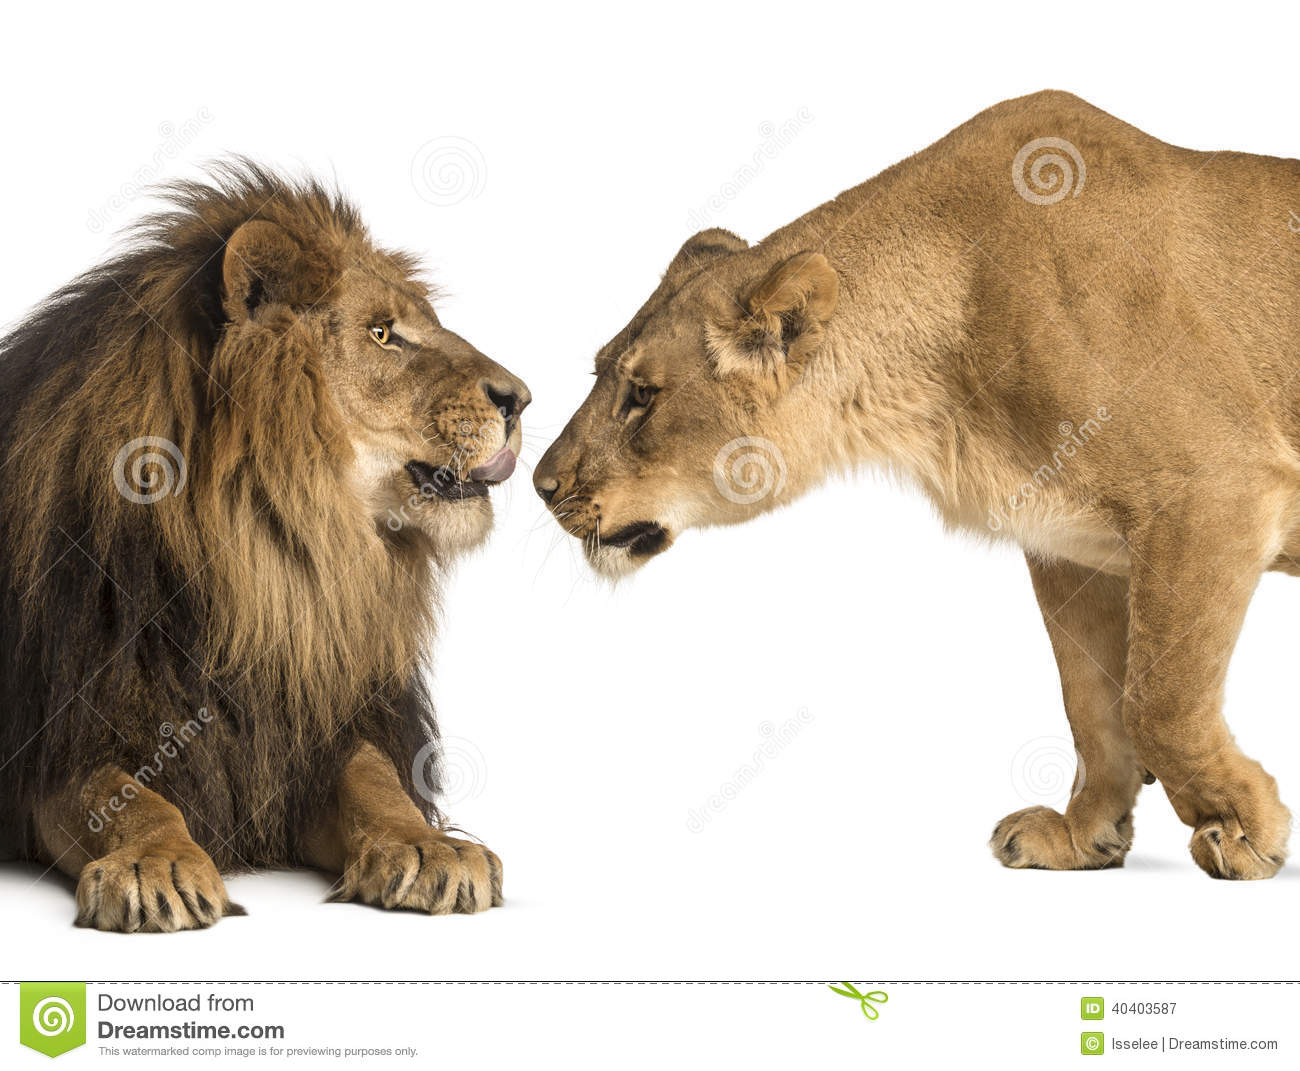 Lion and lioness sniffing each other, Panthera leo, isolated on